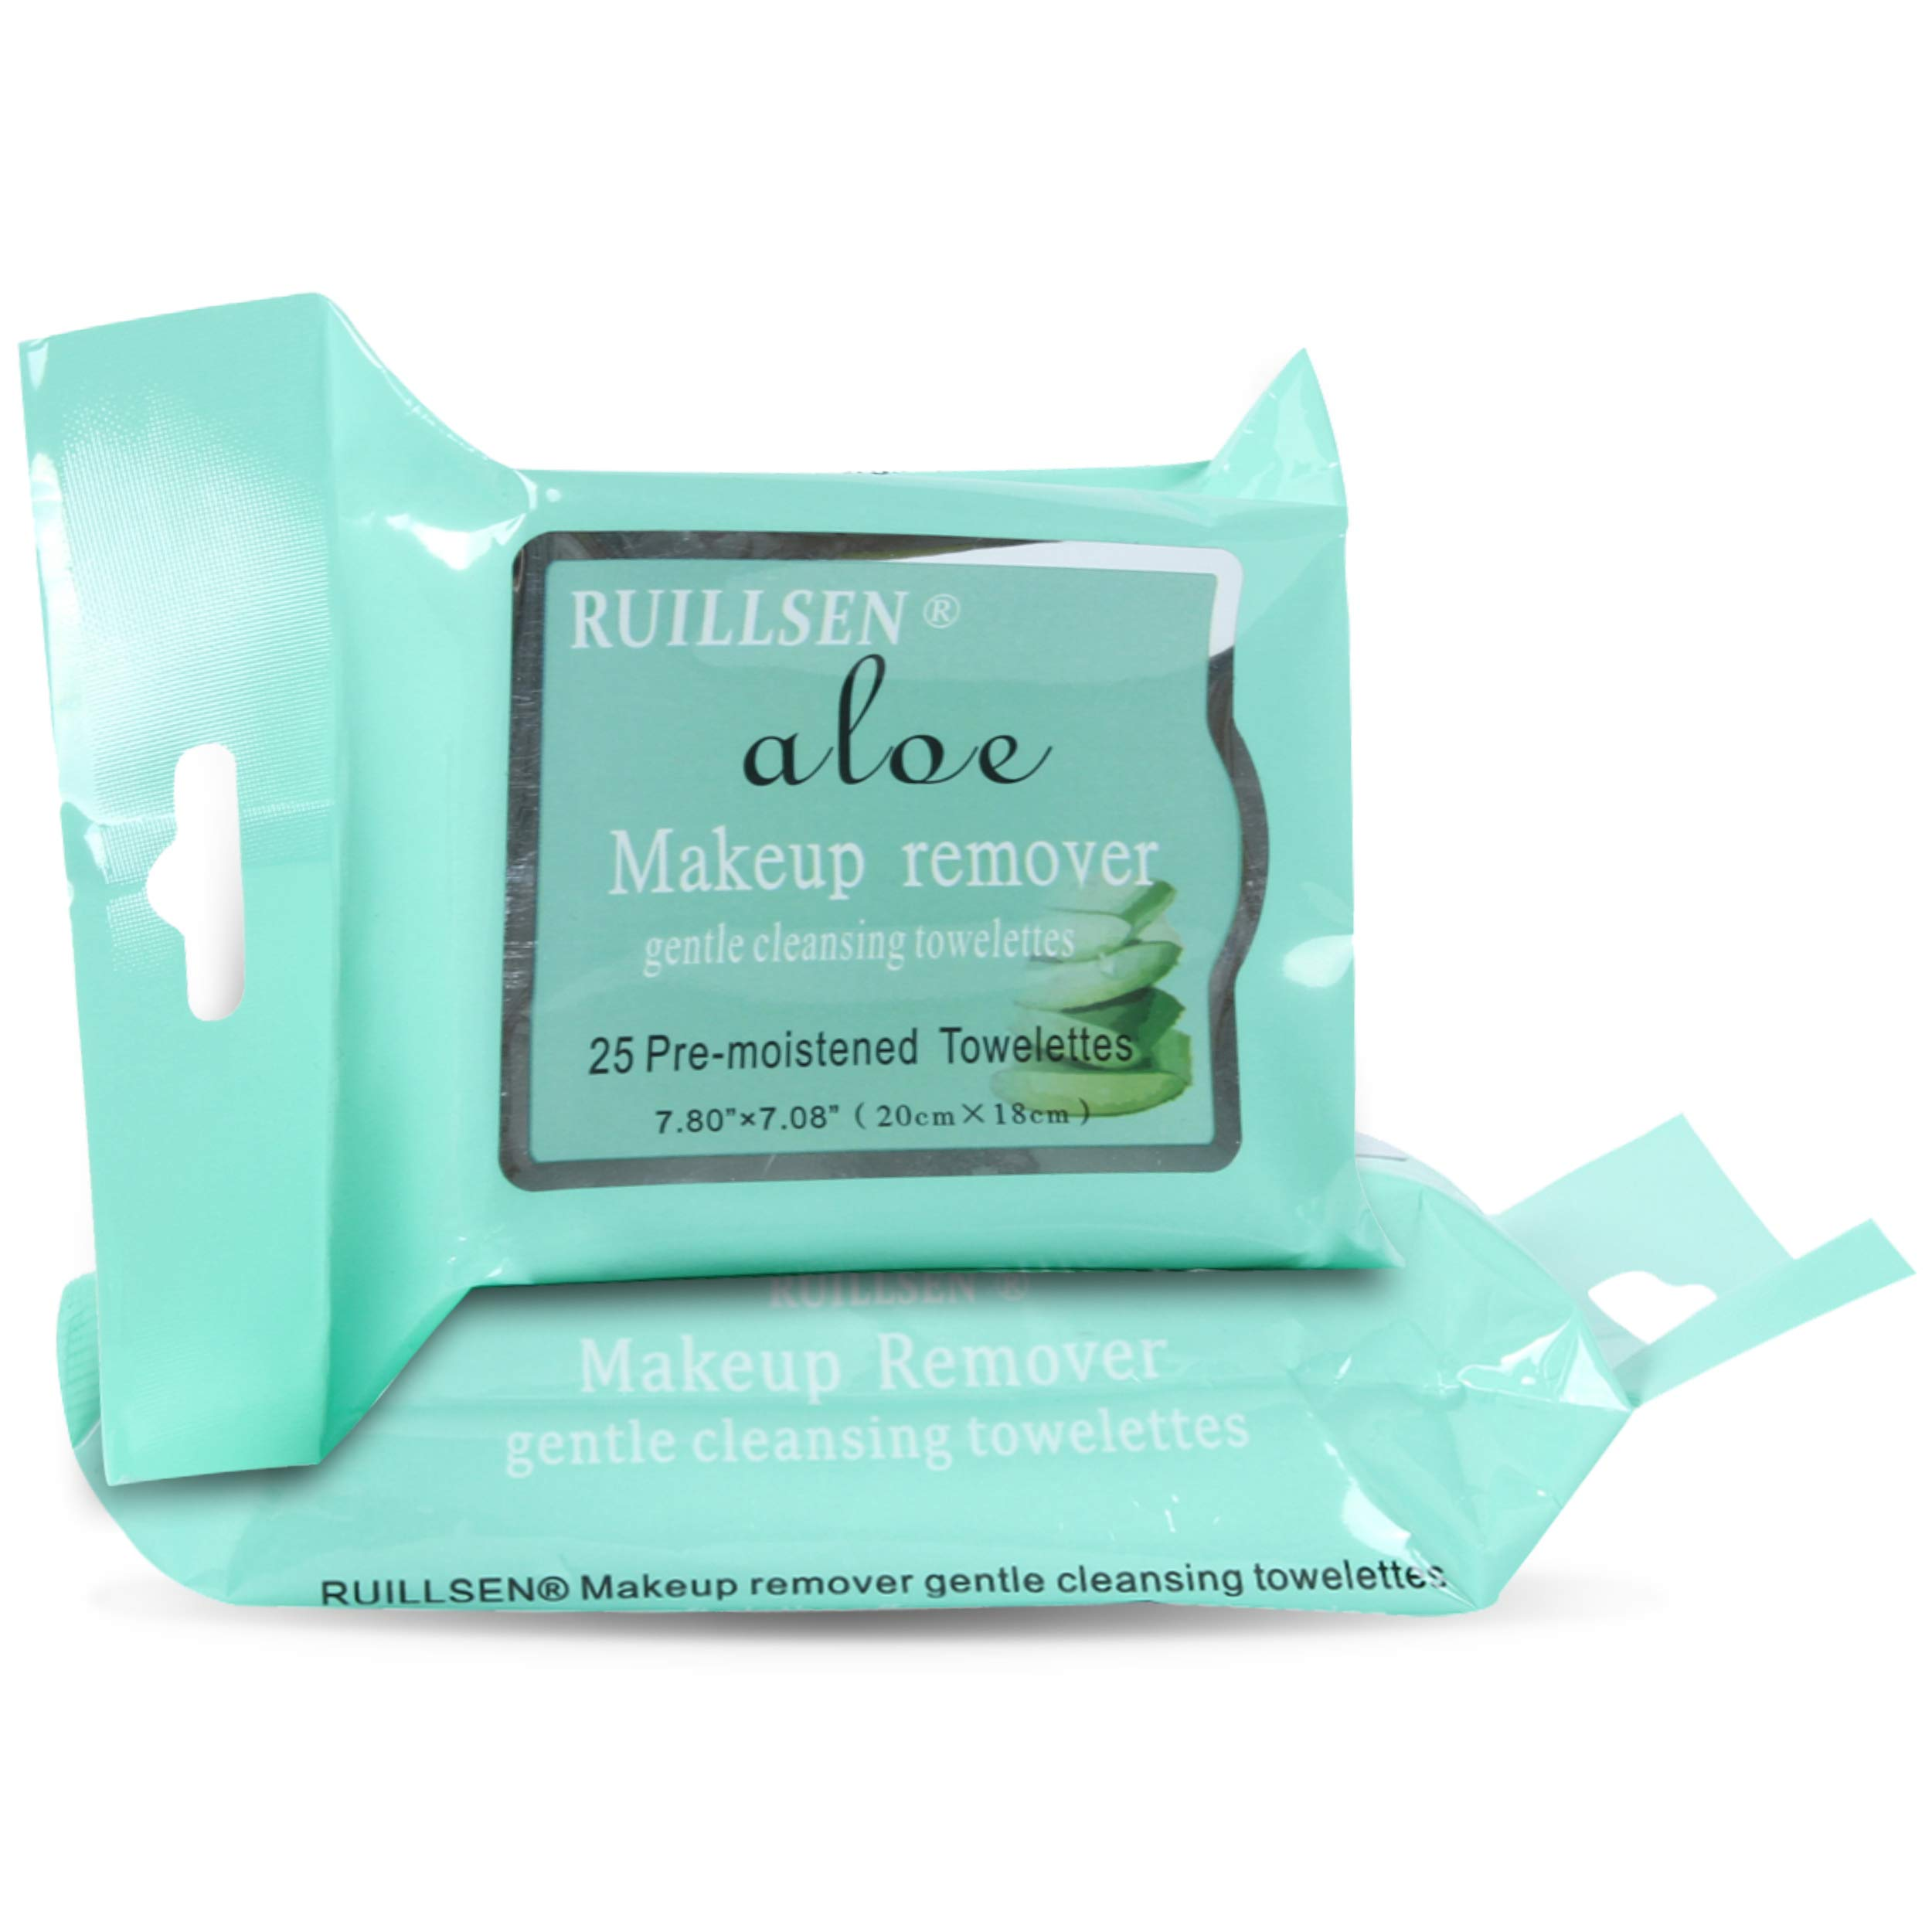 RUILLSEN Fresh Makeup Remover Cleansing Travel Wipes, Summer Use Cleansing Towelettes Daily Face Wipes to Remove Dirt, Oil, Makeup & Waterproof Mascara for Galentine Gift(Aloe Flavored,25 Ct,2 Pks)